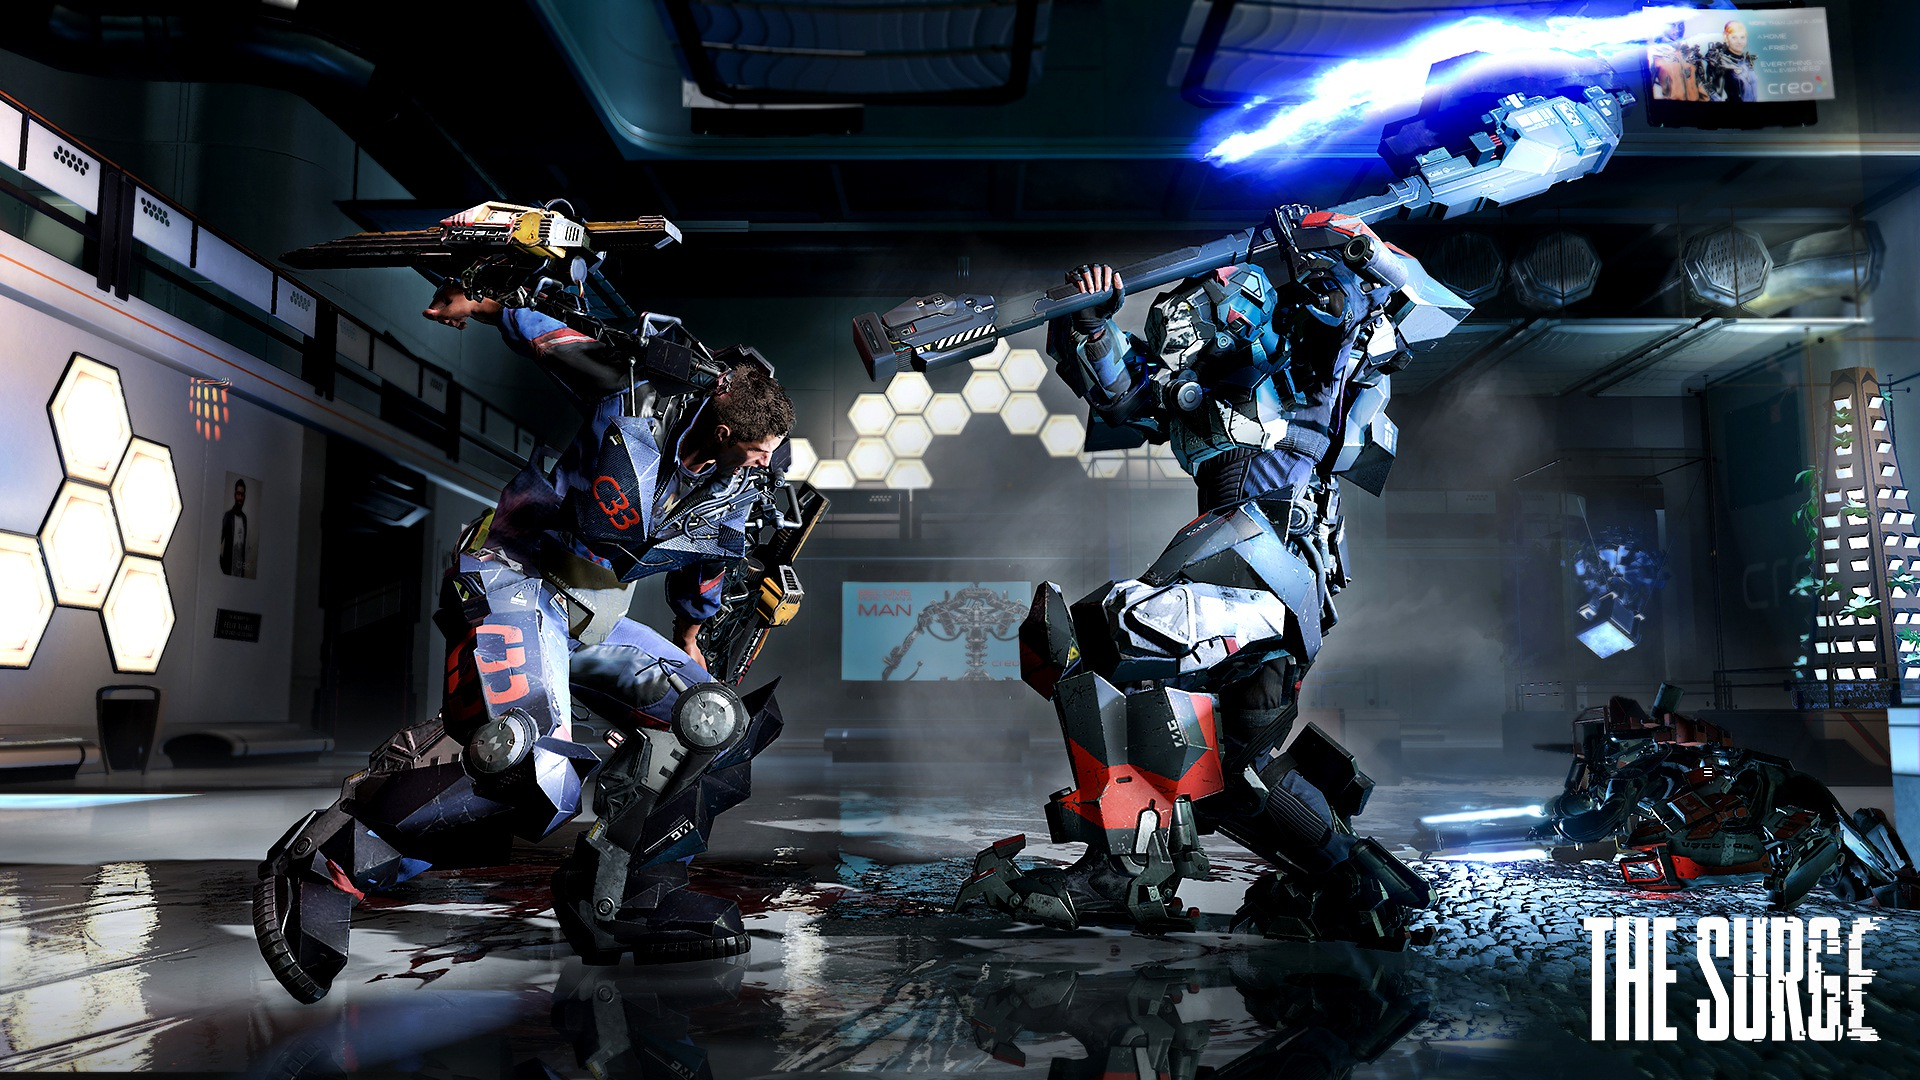 Cool-The-Surge-Fighting-Game-Sci-Fi-Action-1920x1080-wallpaper-wp3604345